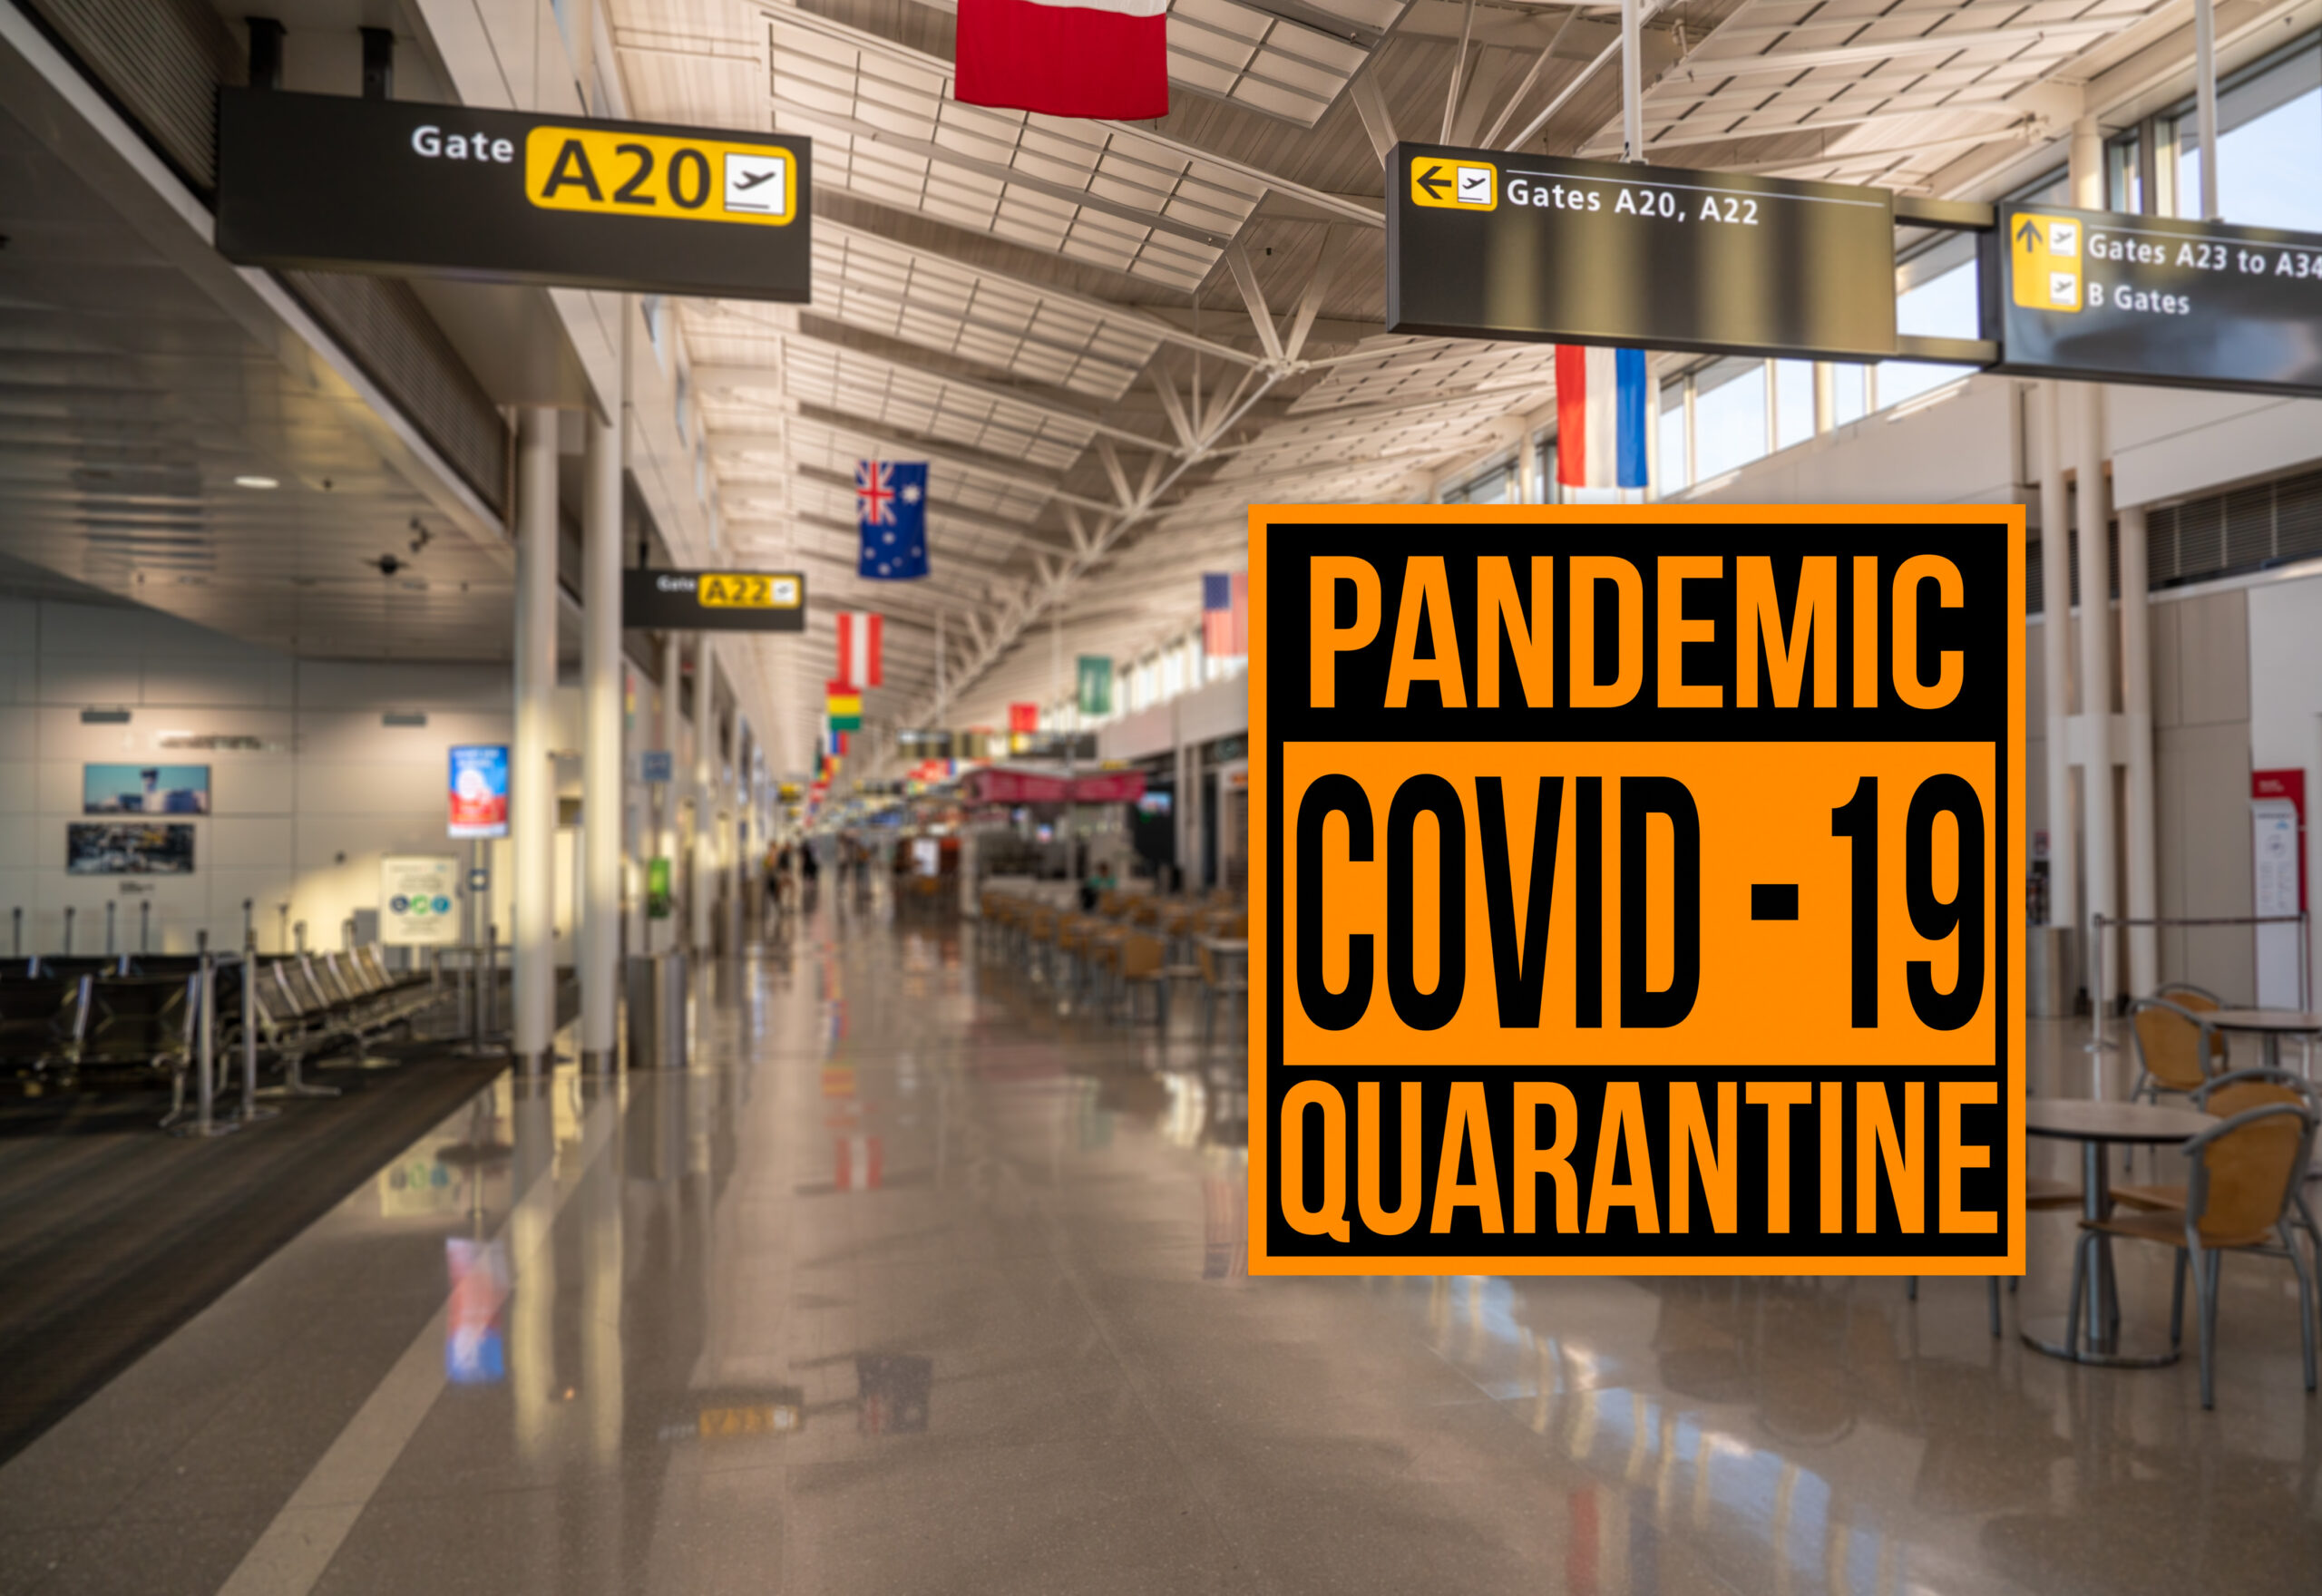 Pandemic sign warning of quarantine due to Covid-19 or coronavirus against aiport background